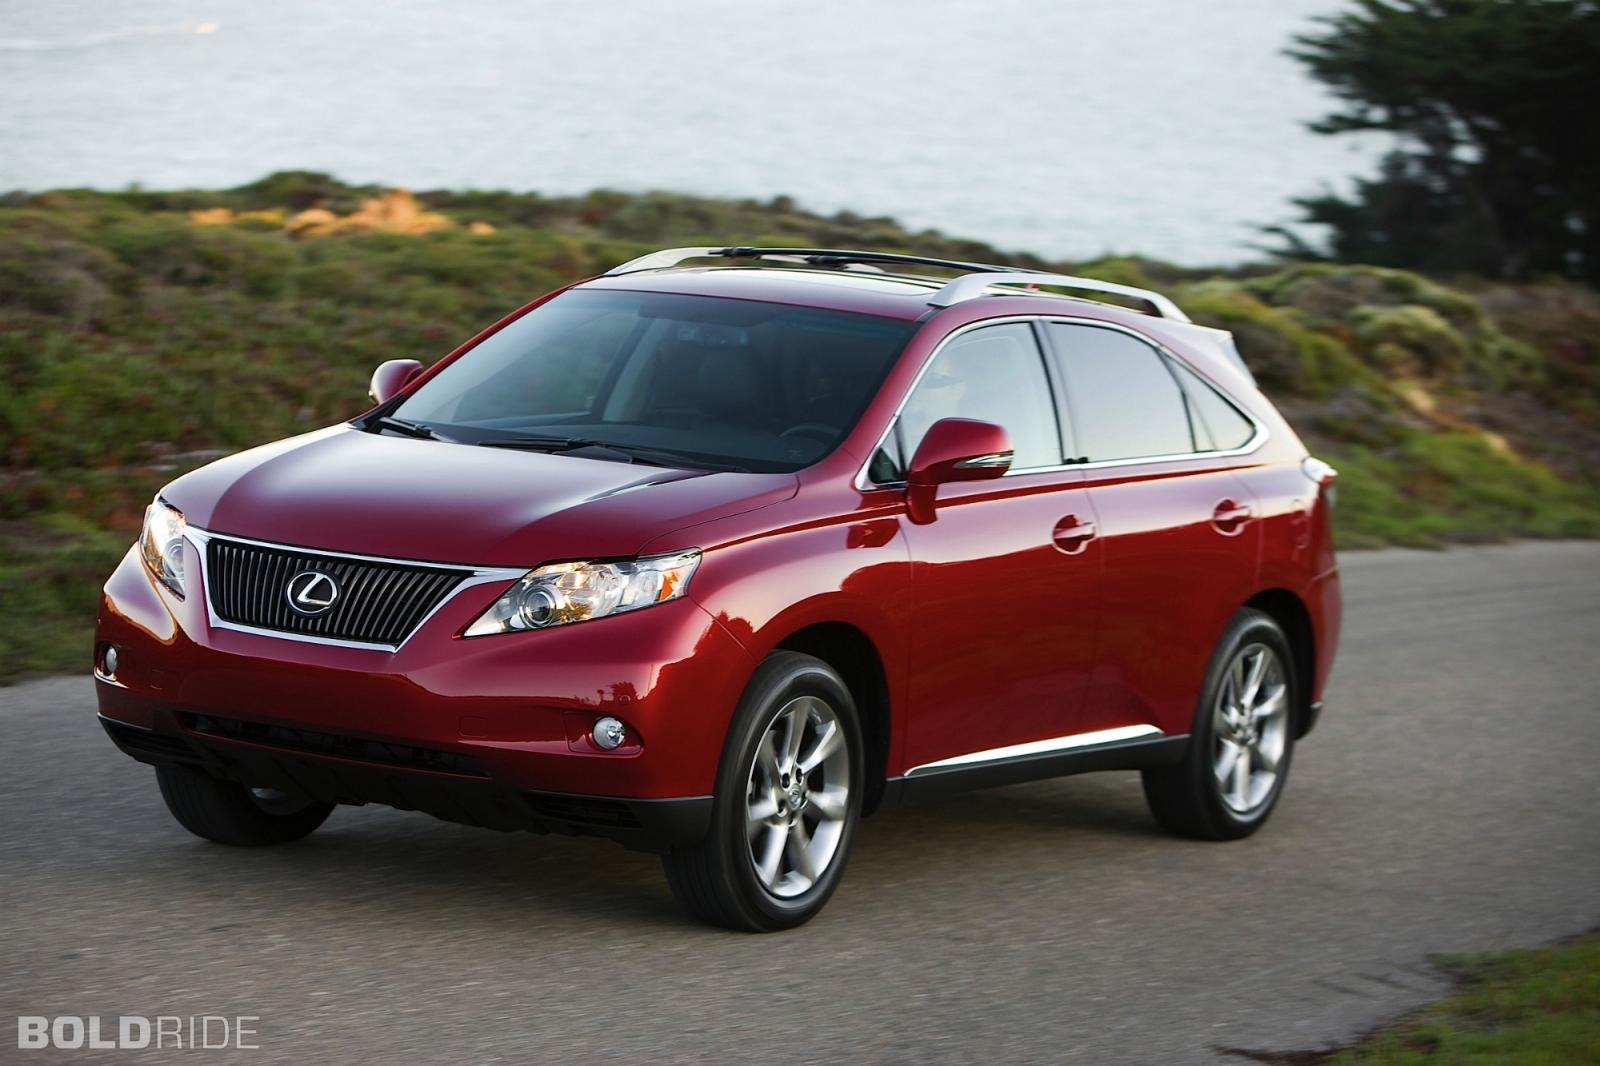 2011 lexus rx 350 information and photos zombiedrive. Black Bedroom Furniture Sets. Home Design Ideas